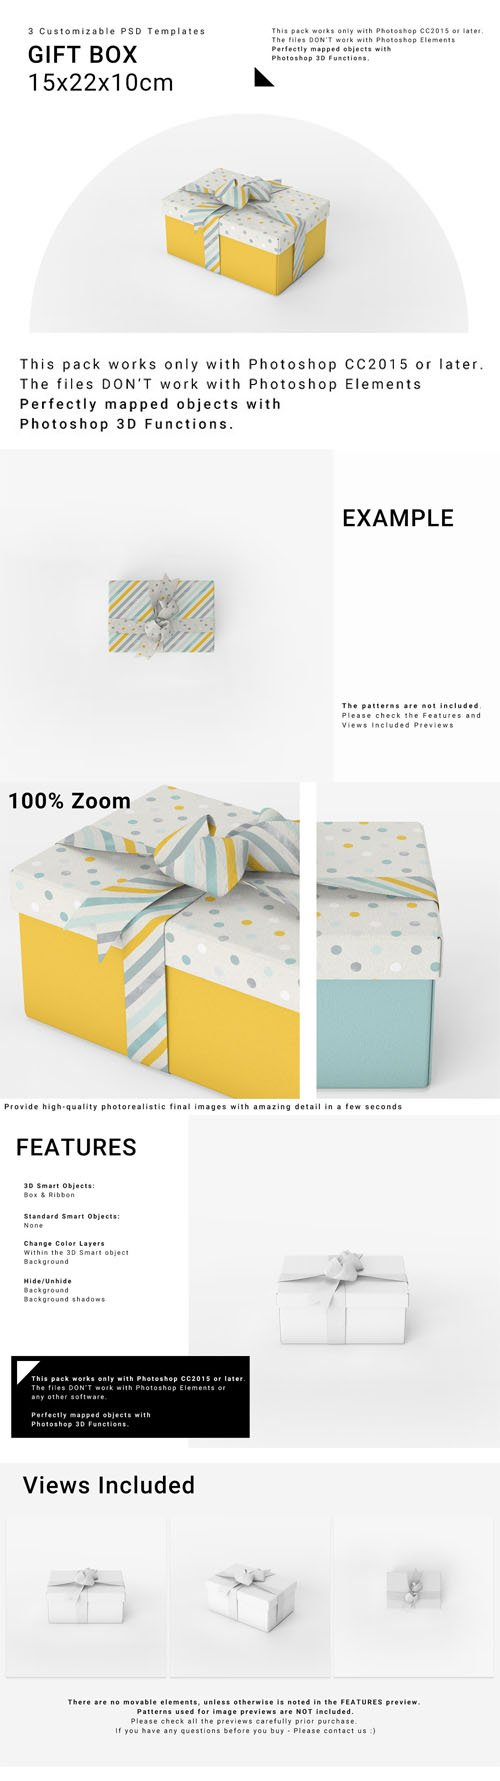 Gift Box Mockup - 3 Customizable PSD Templates